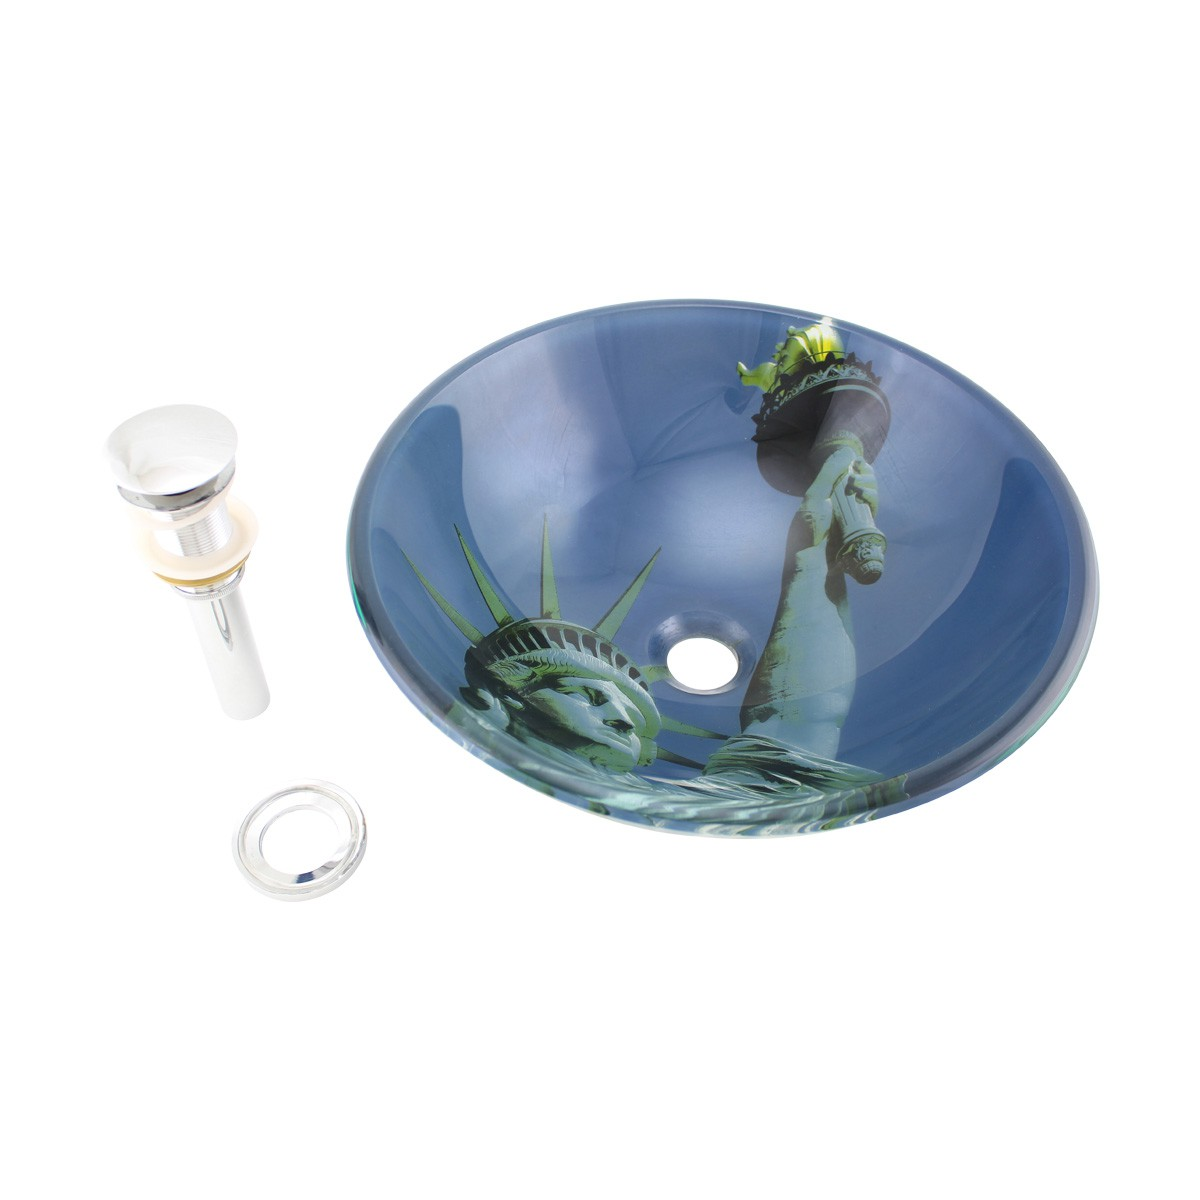 Liberty Tempered Glass Vessel Sink with Drain, Blue DoubleLayer Round Bowl Sink bathroom vessel sinks Countertop vessel sink Vintage Glass Vessel Sink